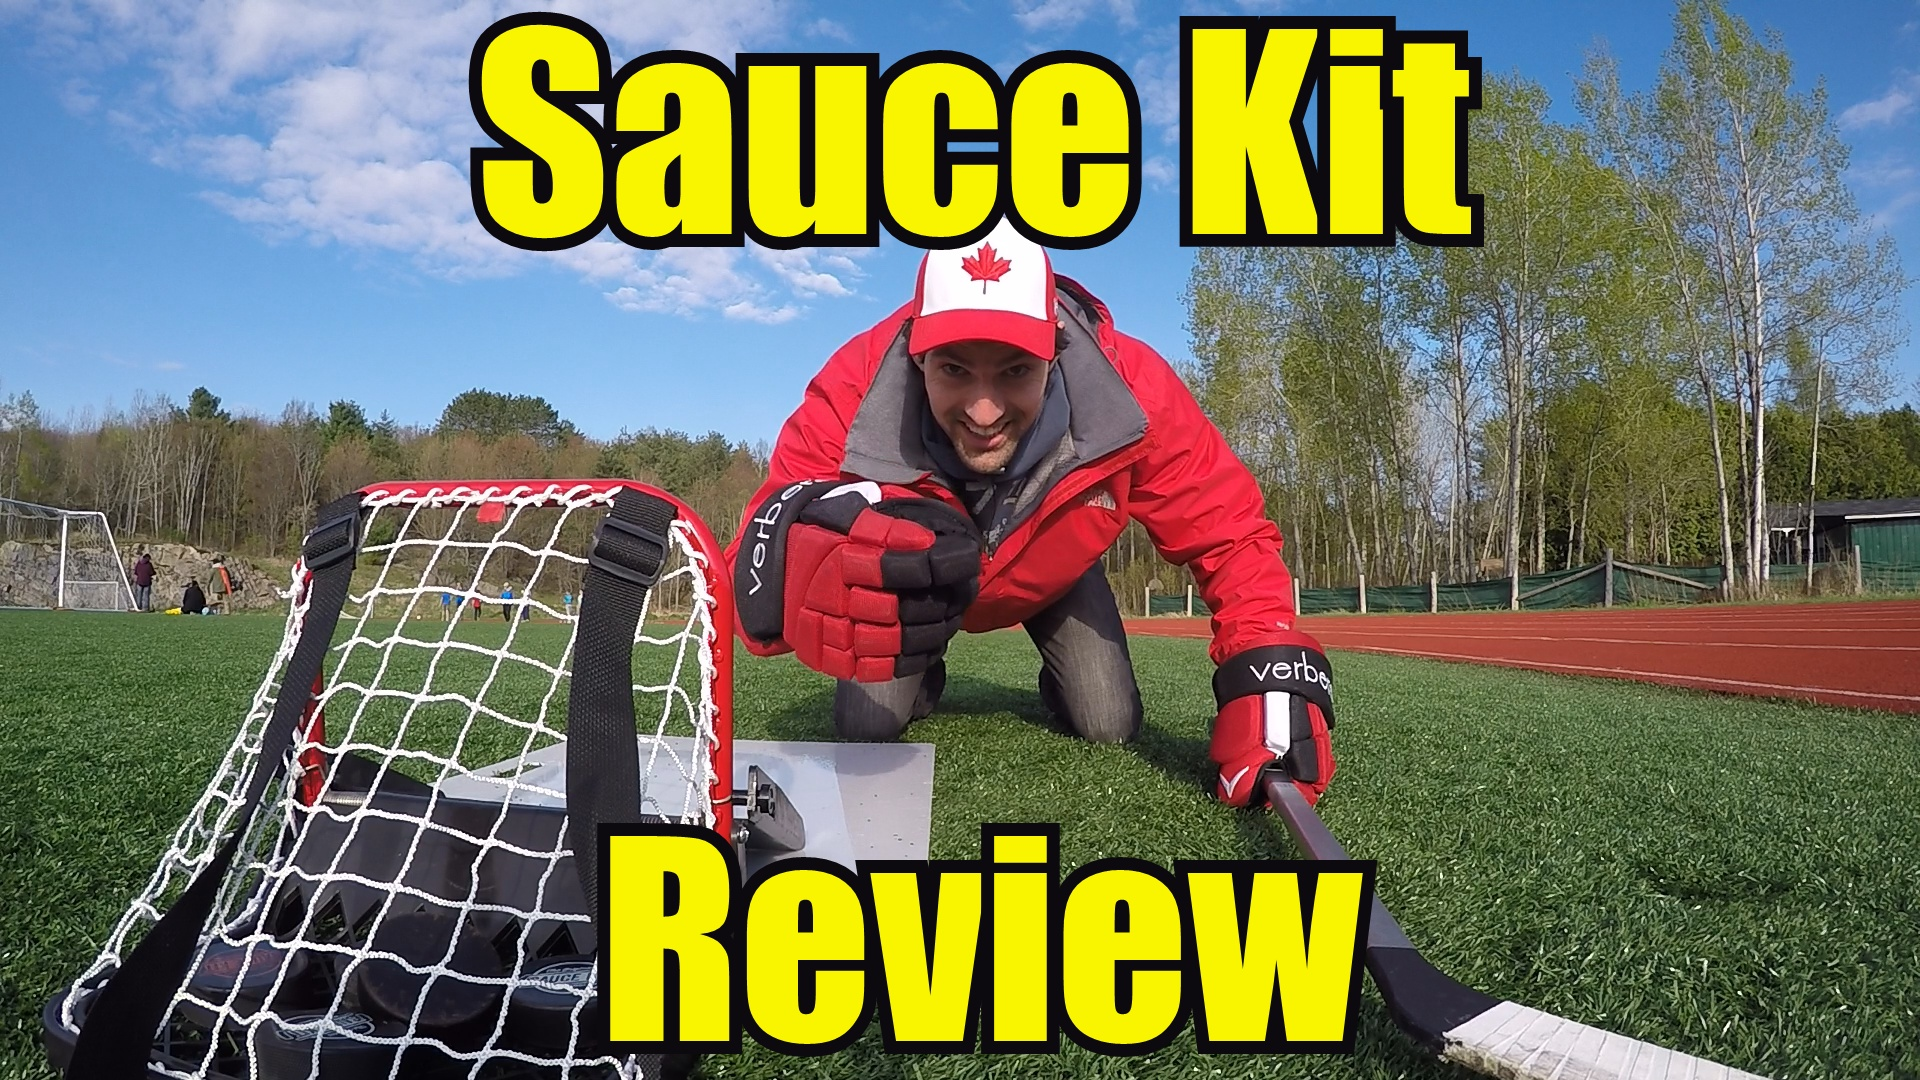 Discover the latest Sauce Hockey Coupons, online promotional codes, and deals posted by our team of experts to save you 75% Off when you shop at Sauce Hockey. We stay on top of the latest Sauce Hockey offers to provide you with free and valid Sauce Hockey Coupon Codes & Discount Codes that will help you save on your favorite items.